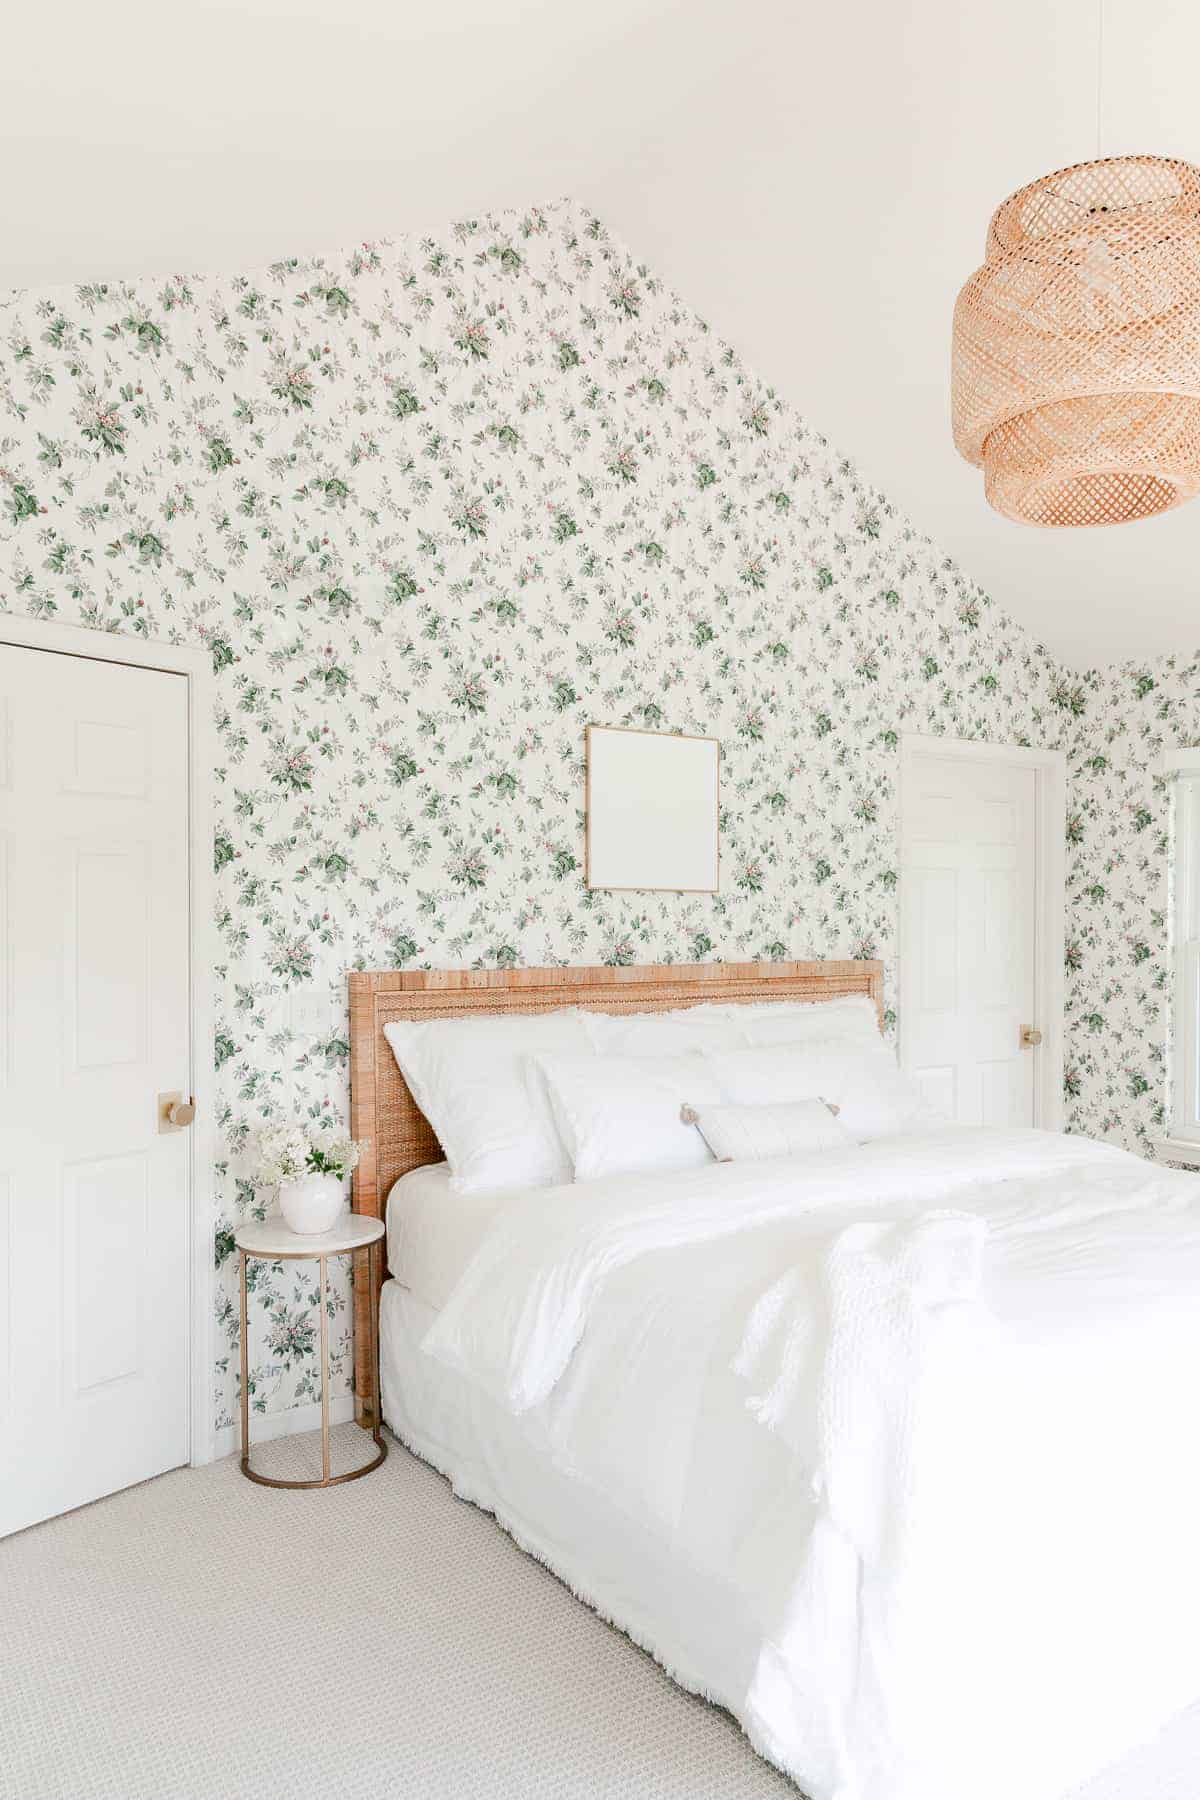 ikea pendant light over rattan bed with white bedding in wallpaper bedroom